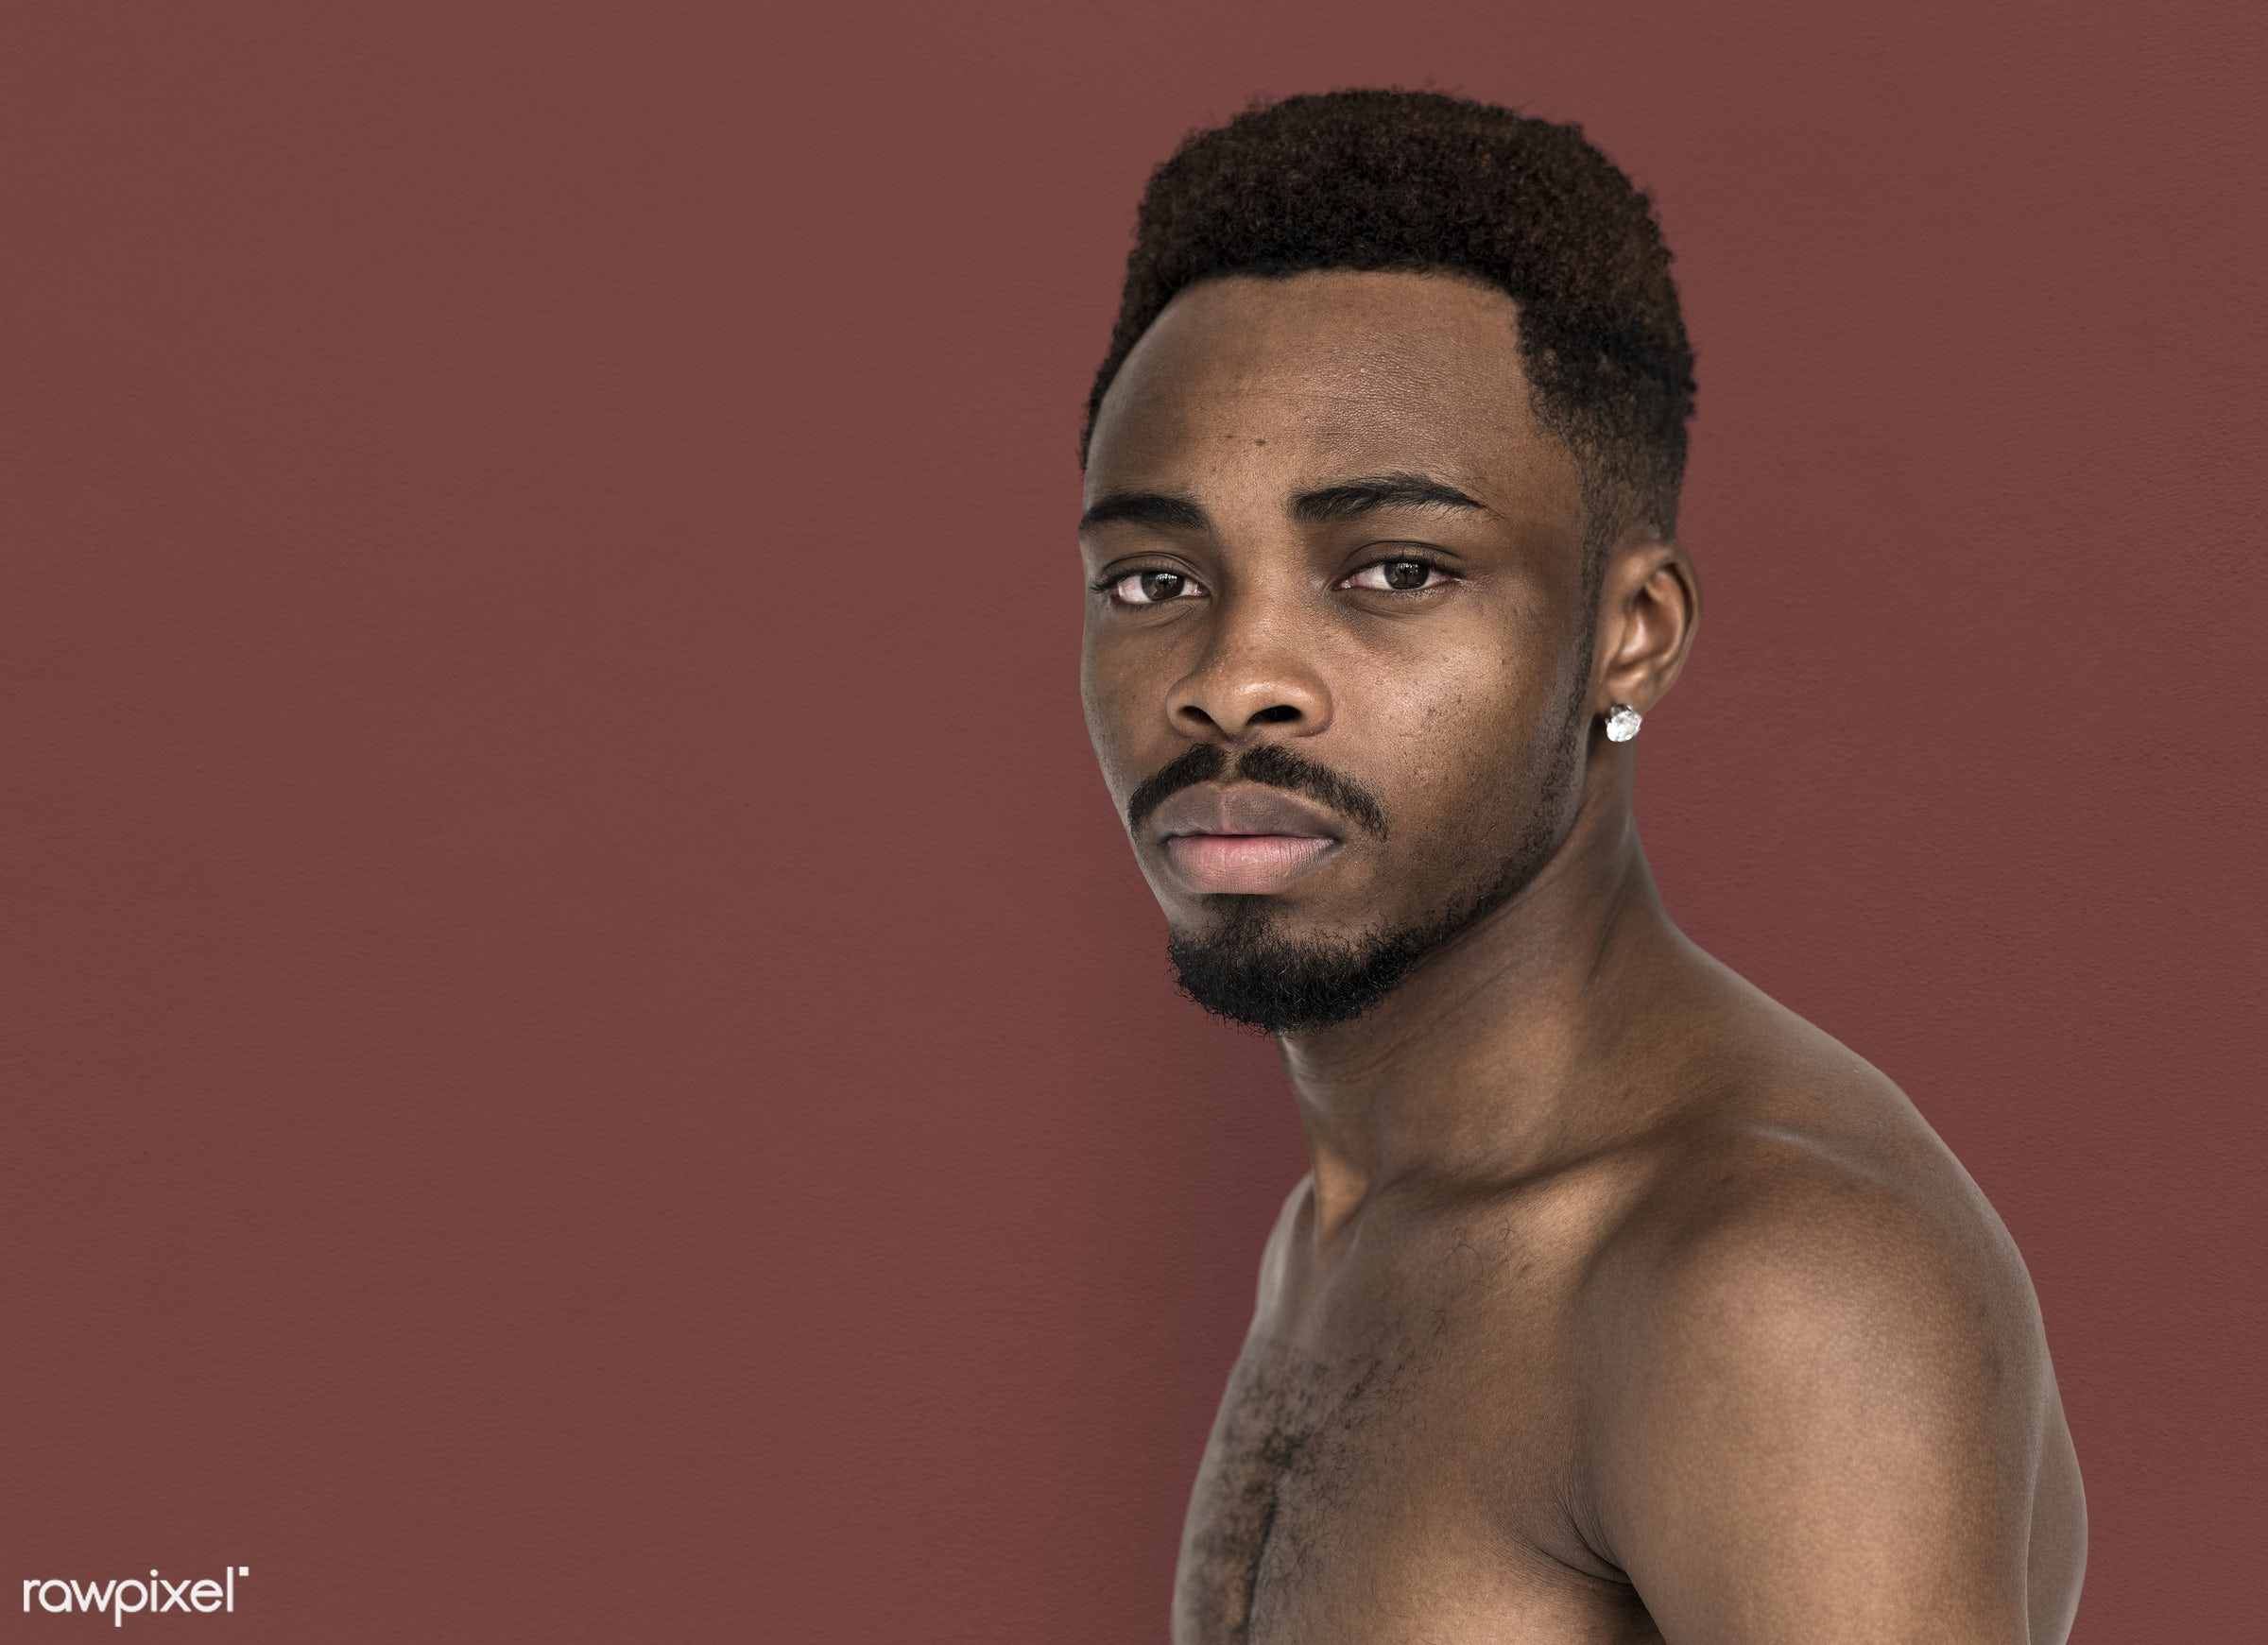 expression, studio, face, pierced ears, person, piercing, people, face expression, men, man, isolated, male, stress, adult,...